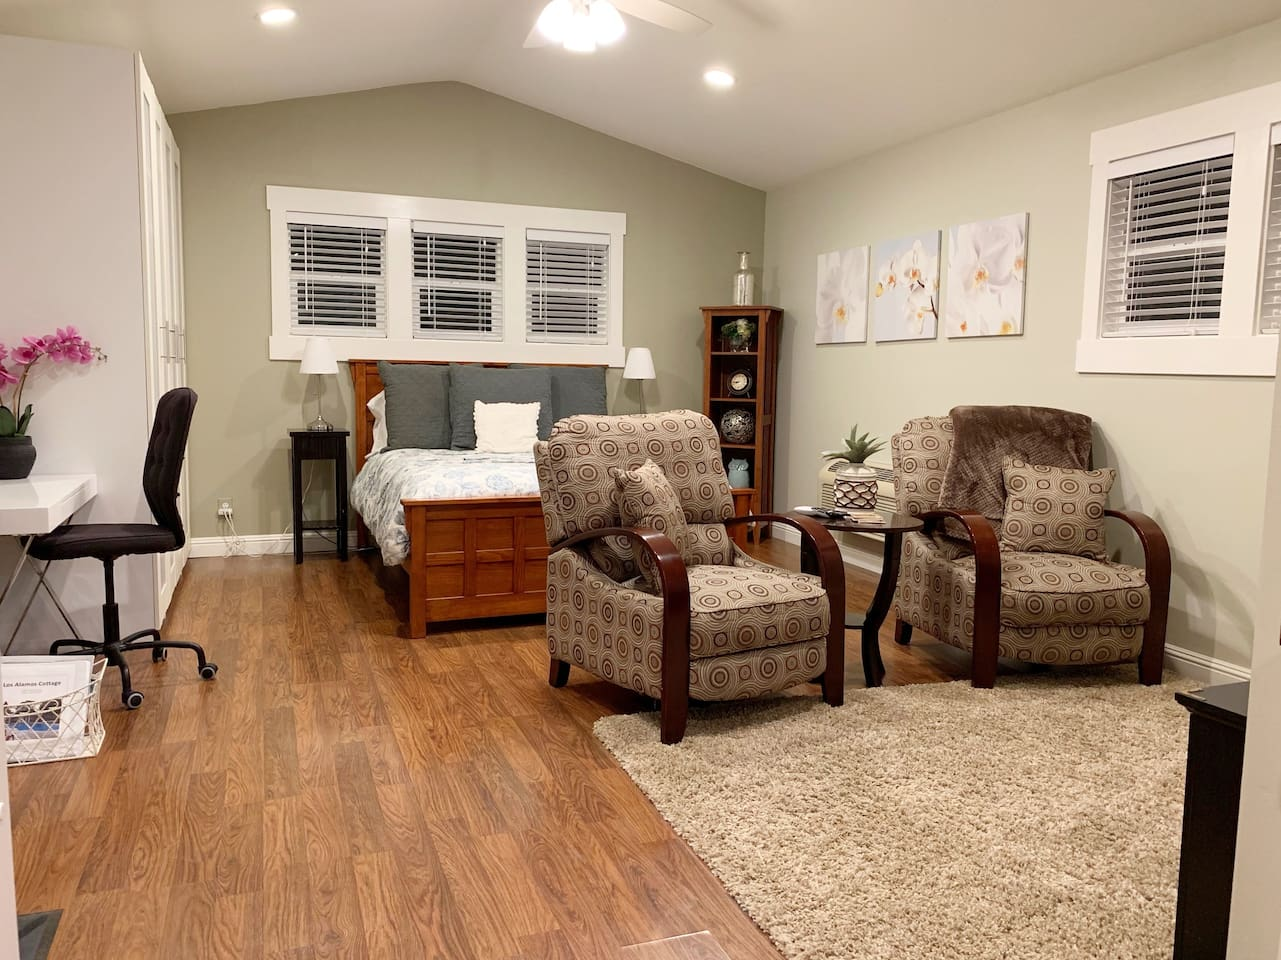 The space is 440 square feet. The vaulted ceilings and lots of windows make it feel even larger.